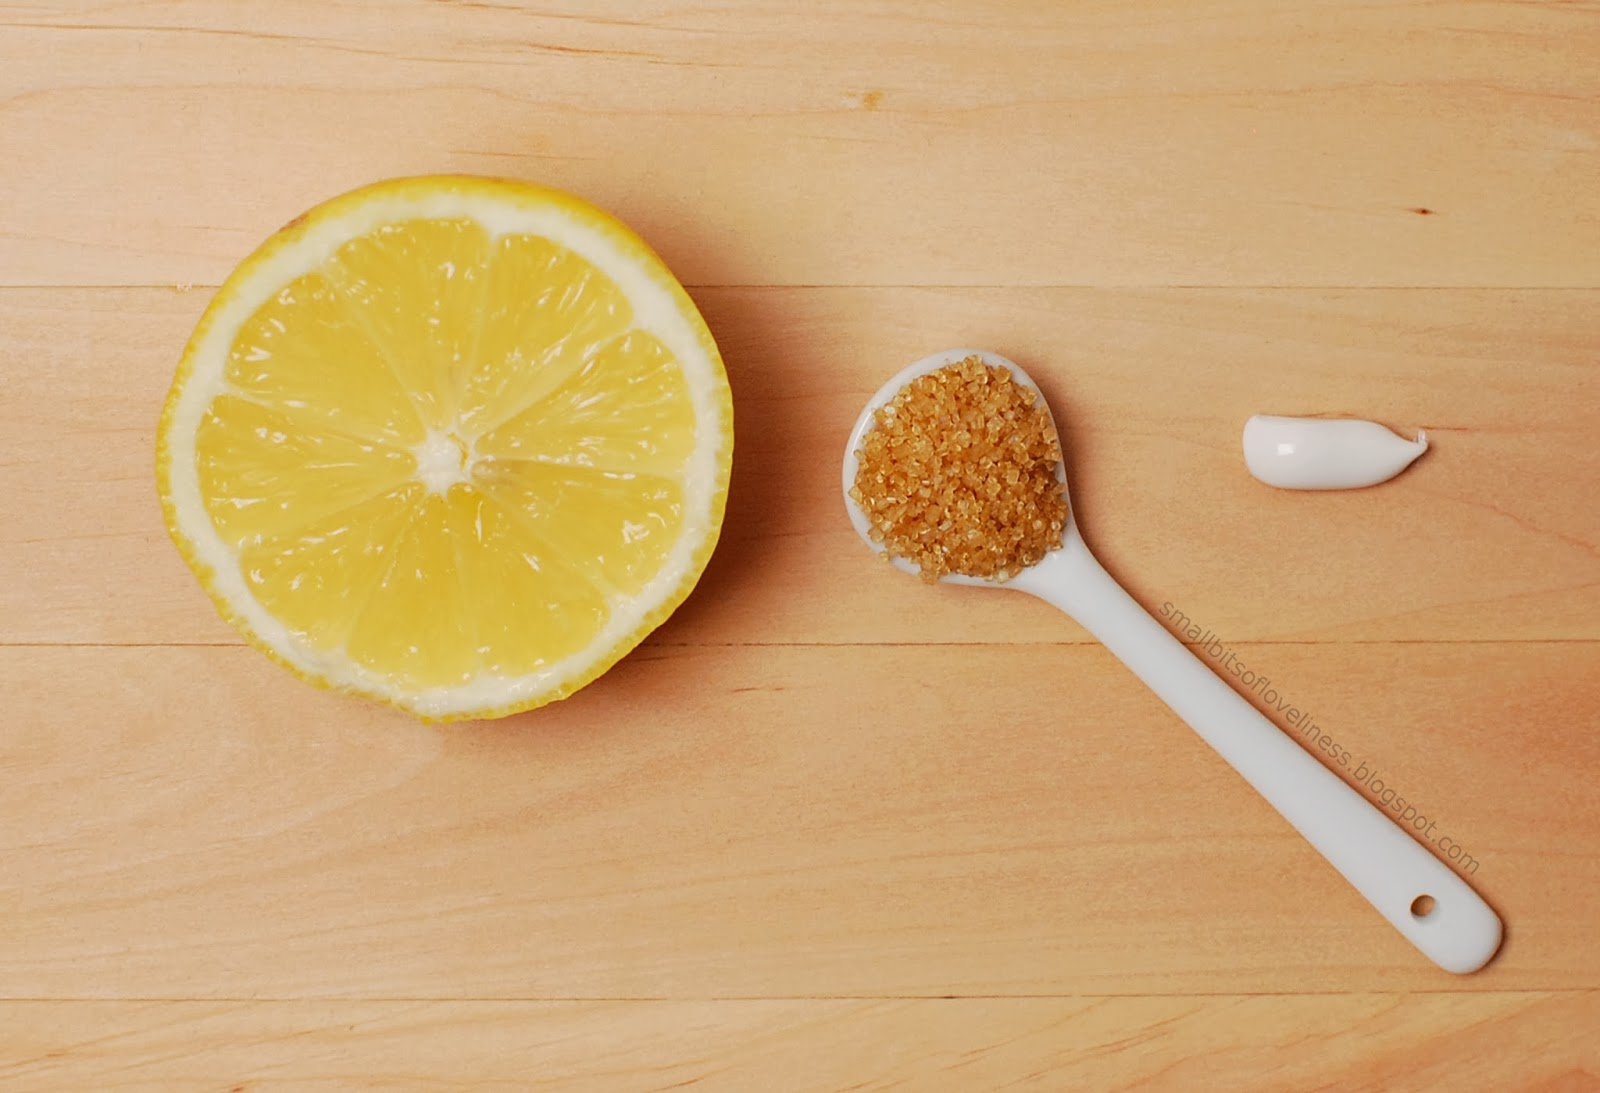 DIY Ingredients to Avoid Lemon, Sugar, Toothpaste